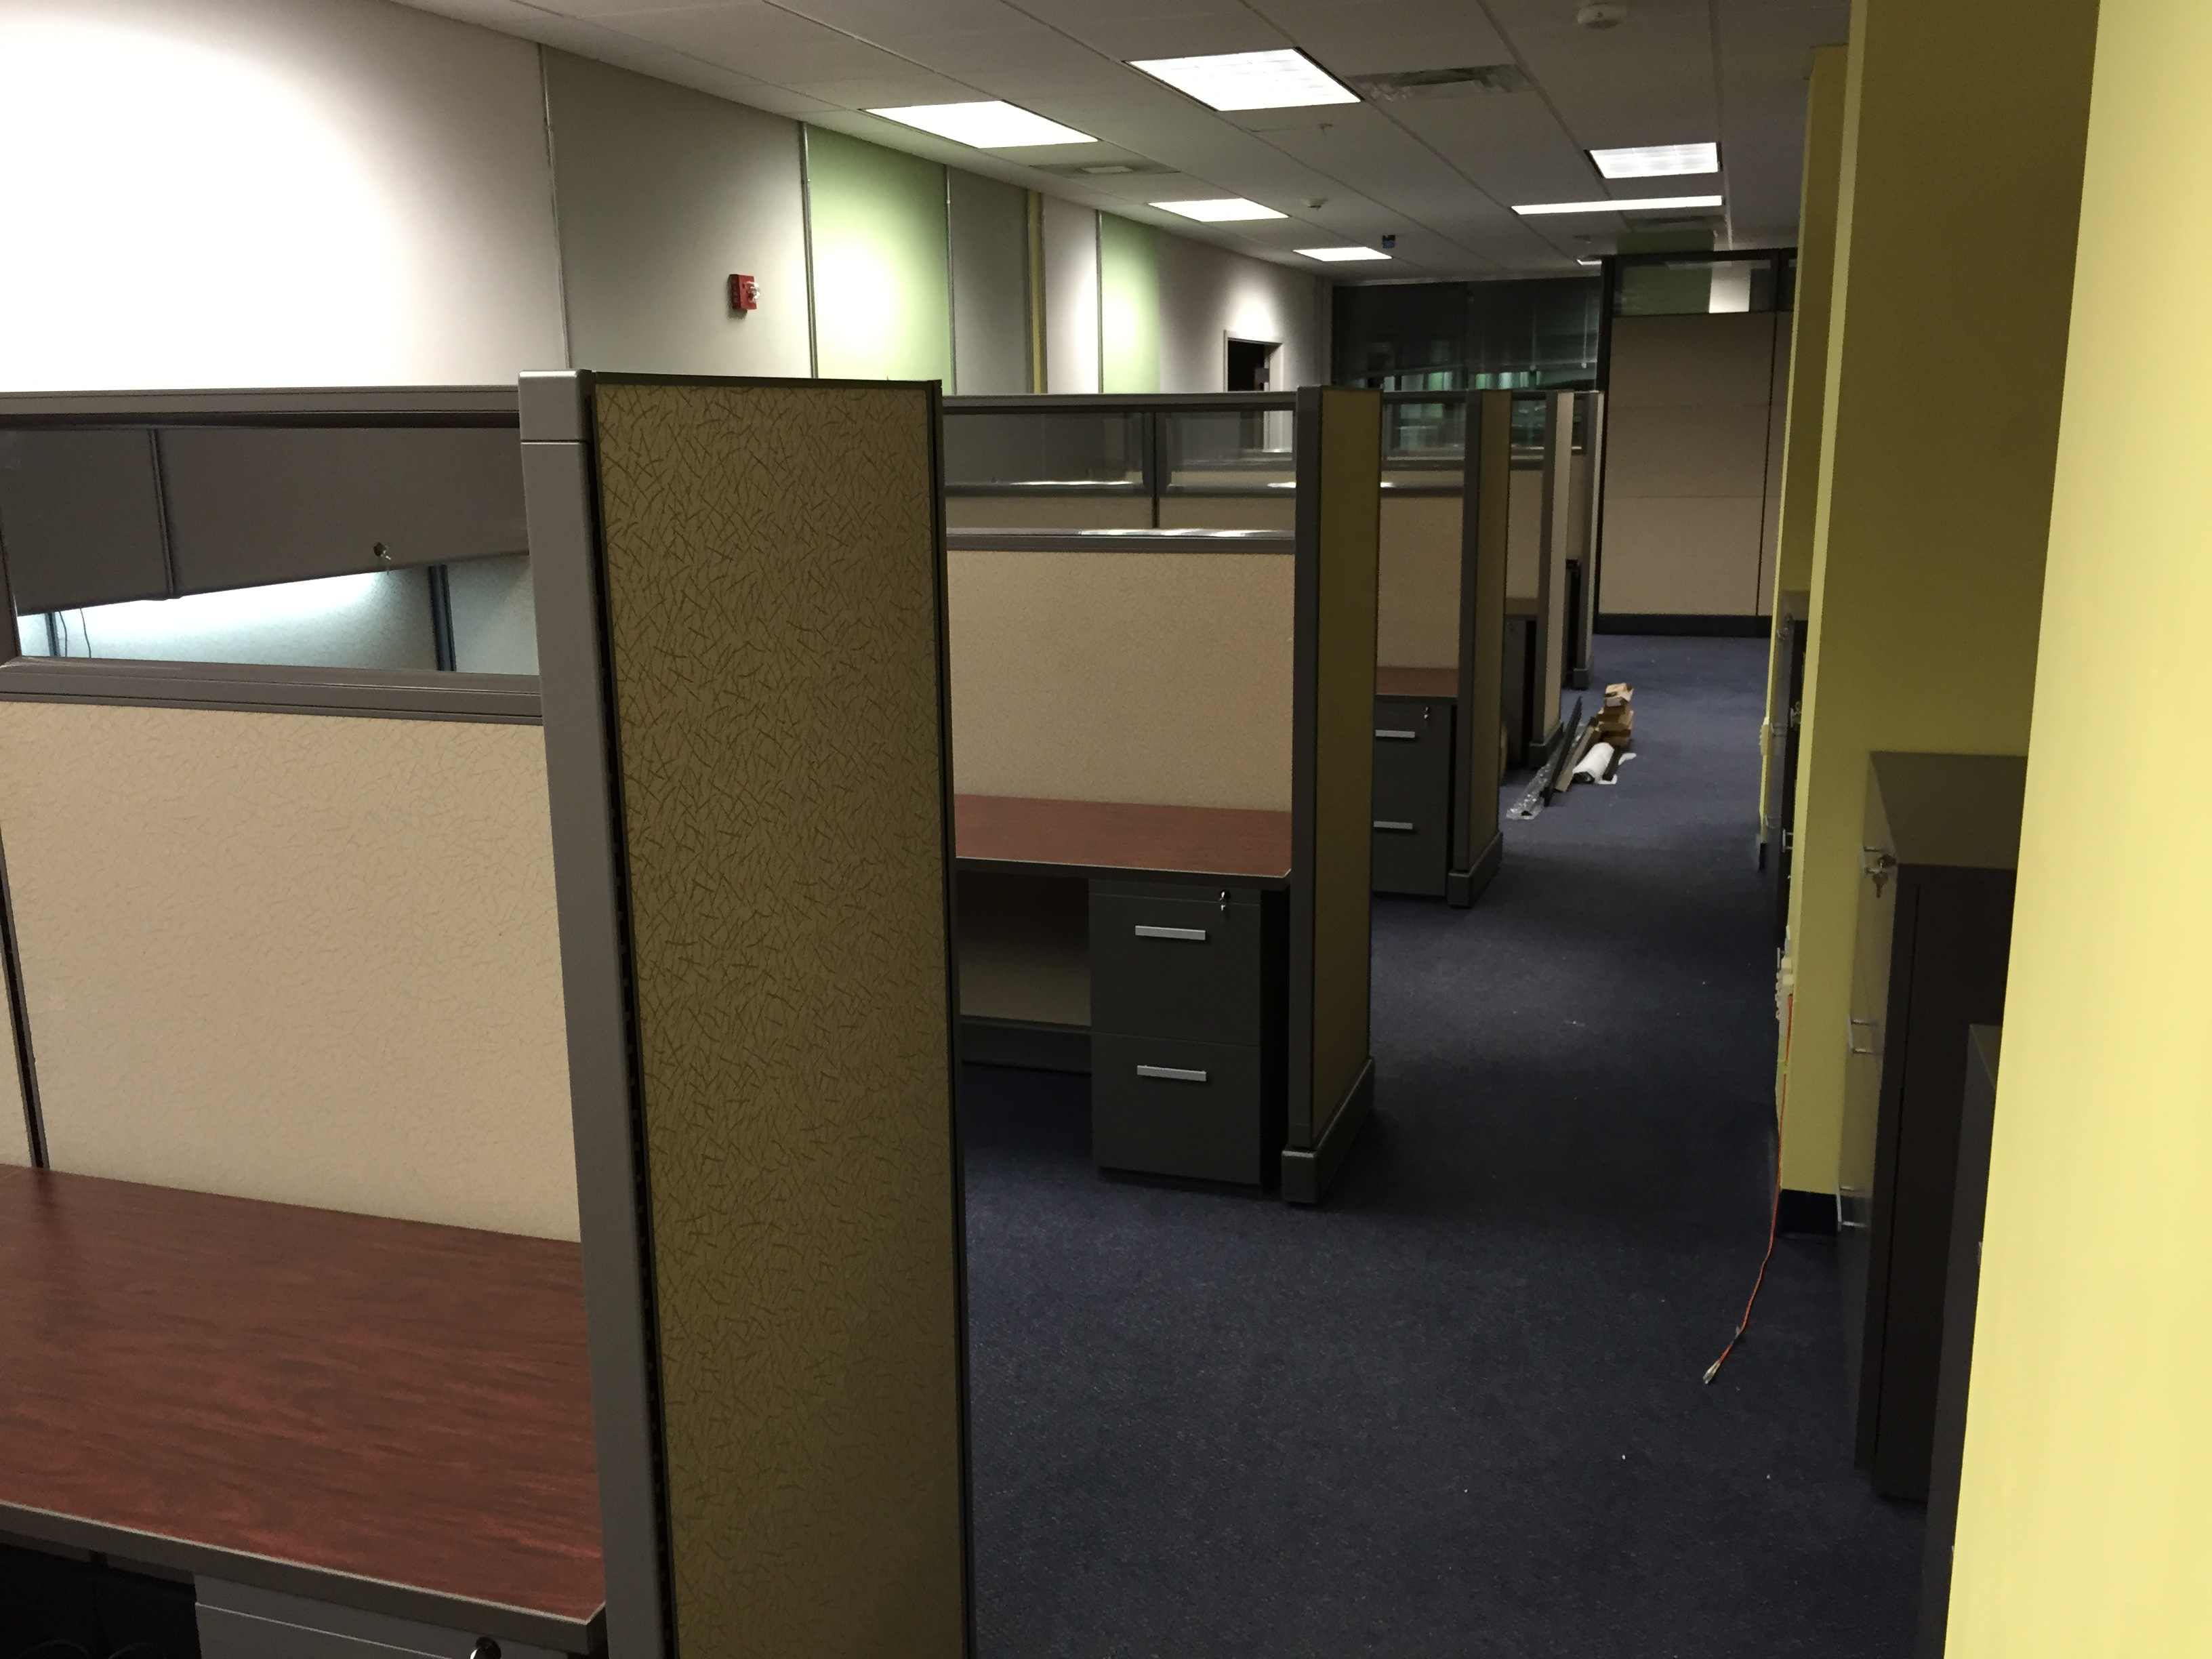 cubicles-office-furniture-venice-florida-manasota-office-supplies-llc.jpg